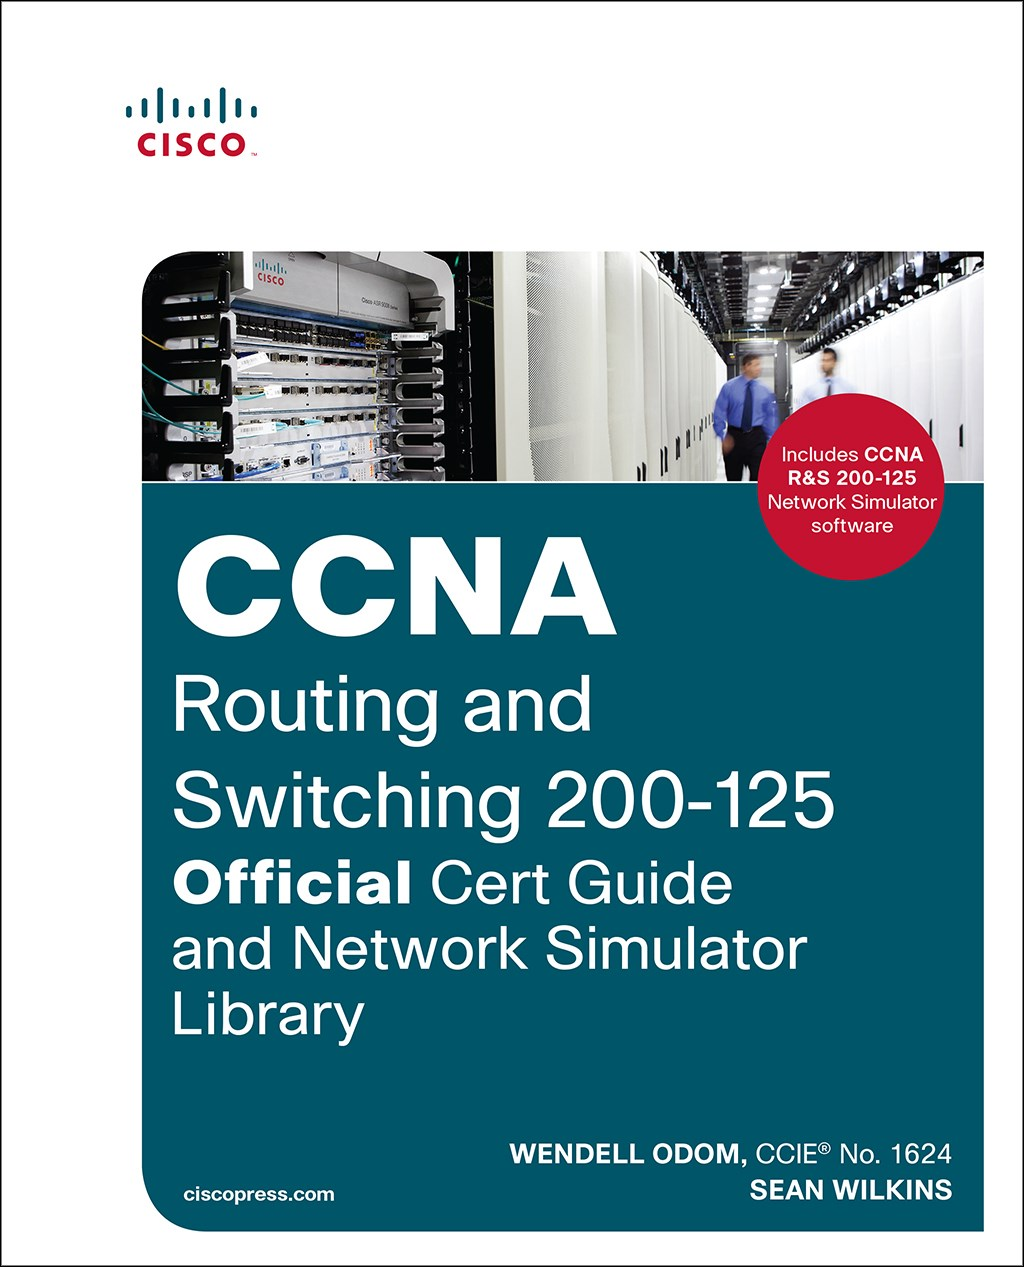 CCNA Routing and Switching 200-125 Official Cert Guide and Network Simulator Library